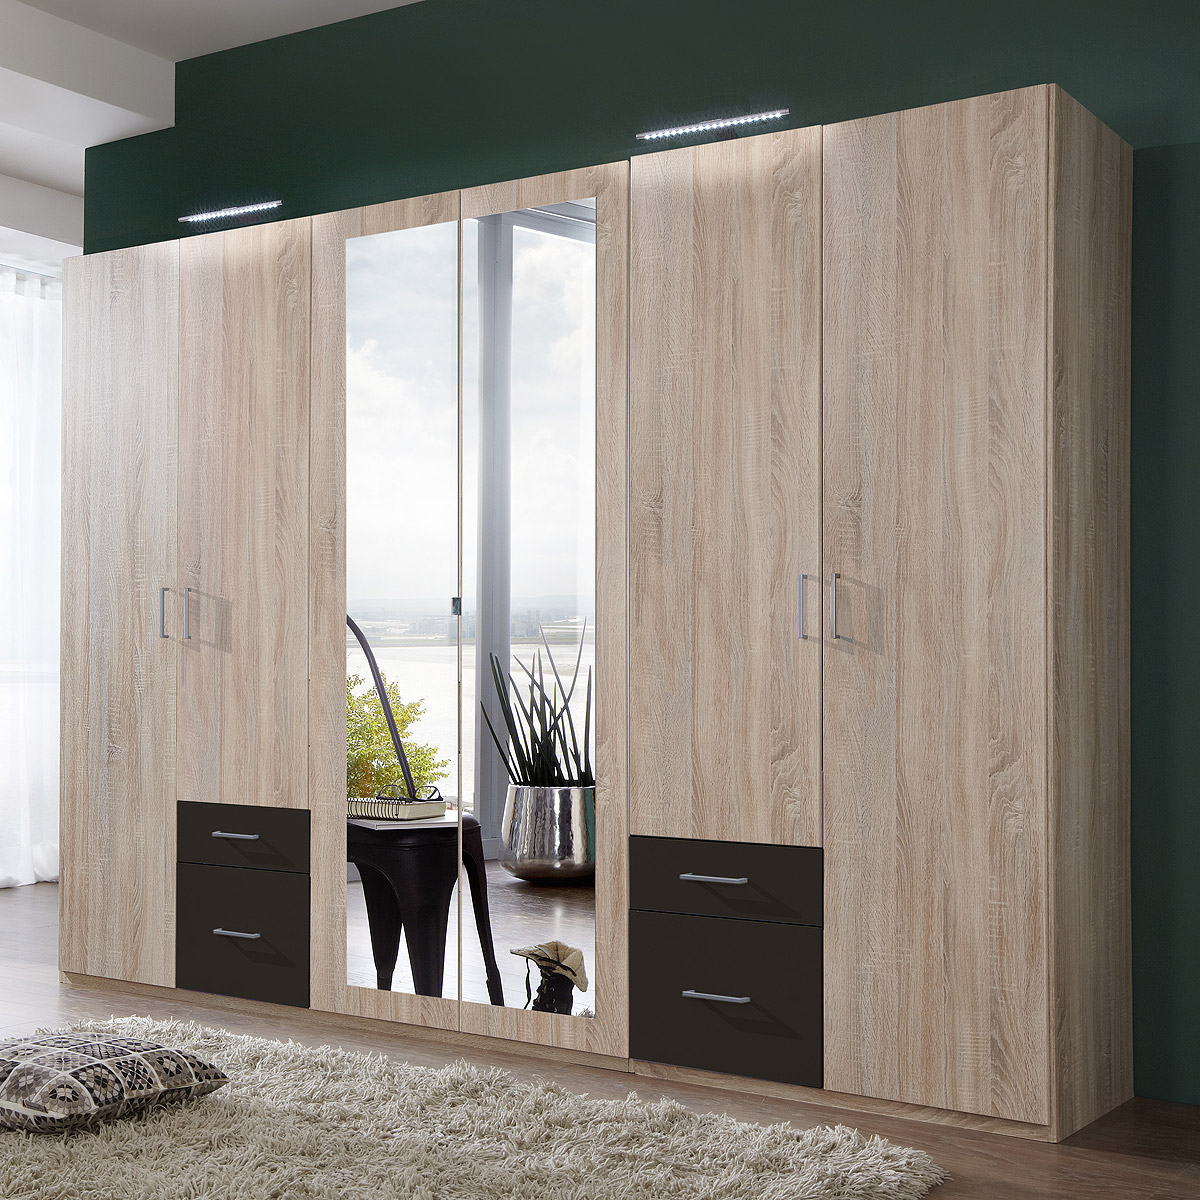 kleiderschrank fly schrank schlafzimmer eiche s gerau lava mit spiegel b 270 cm ebay. Black Bedroom Furniture Sets. Home Design Ideas